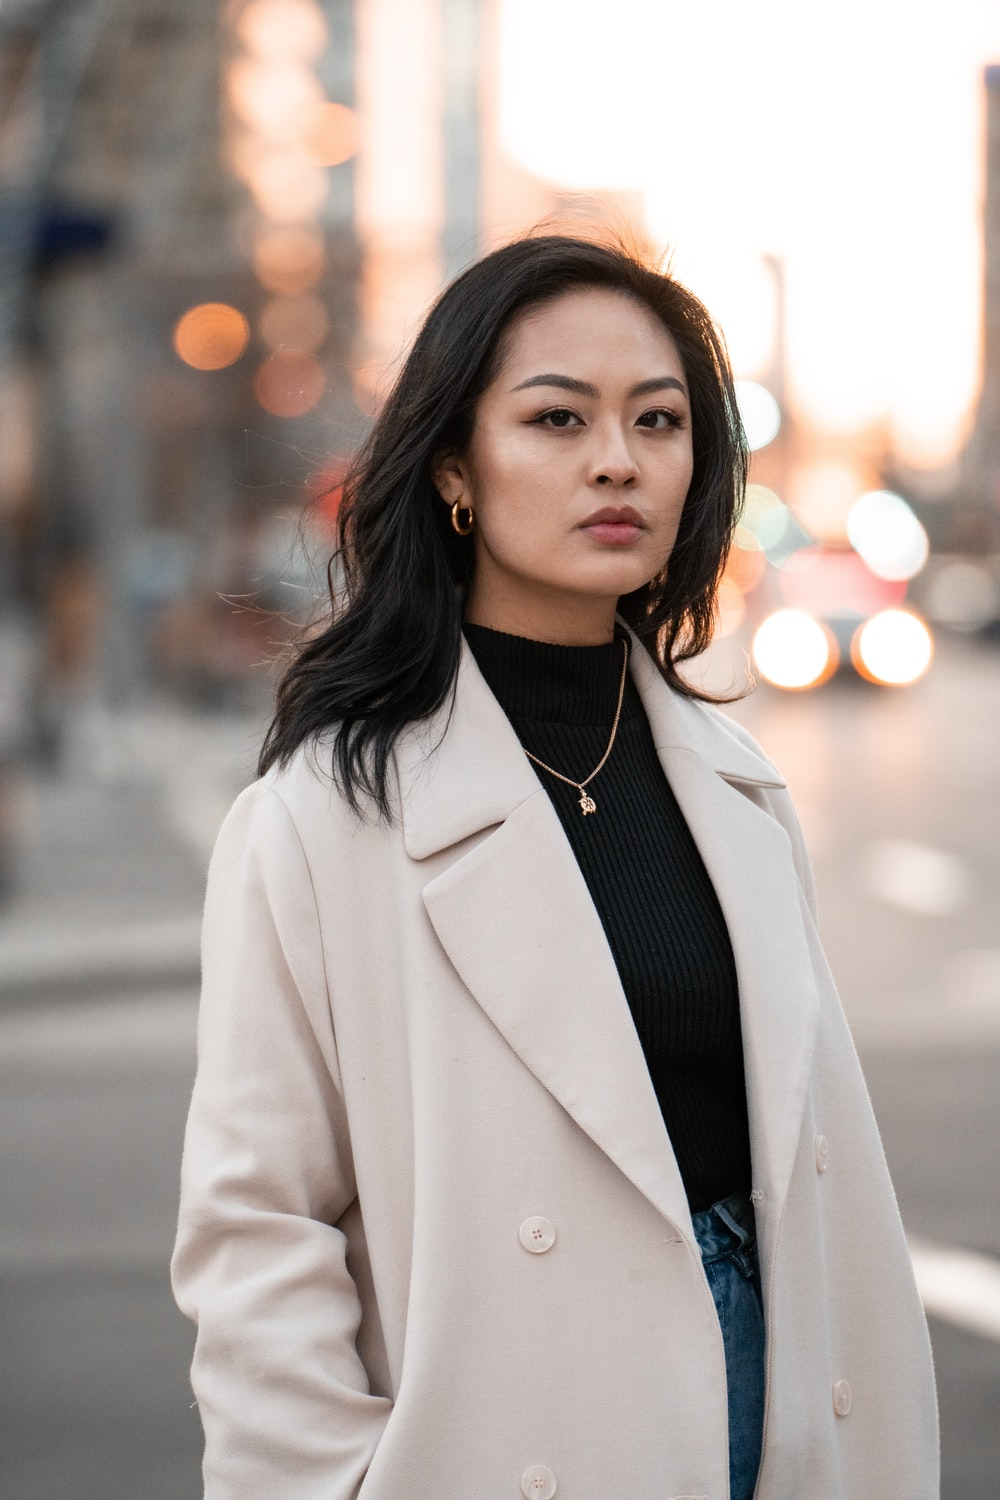 woman in white blazer standing on road during daytime